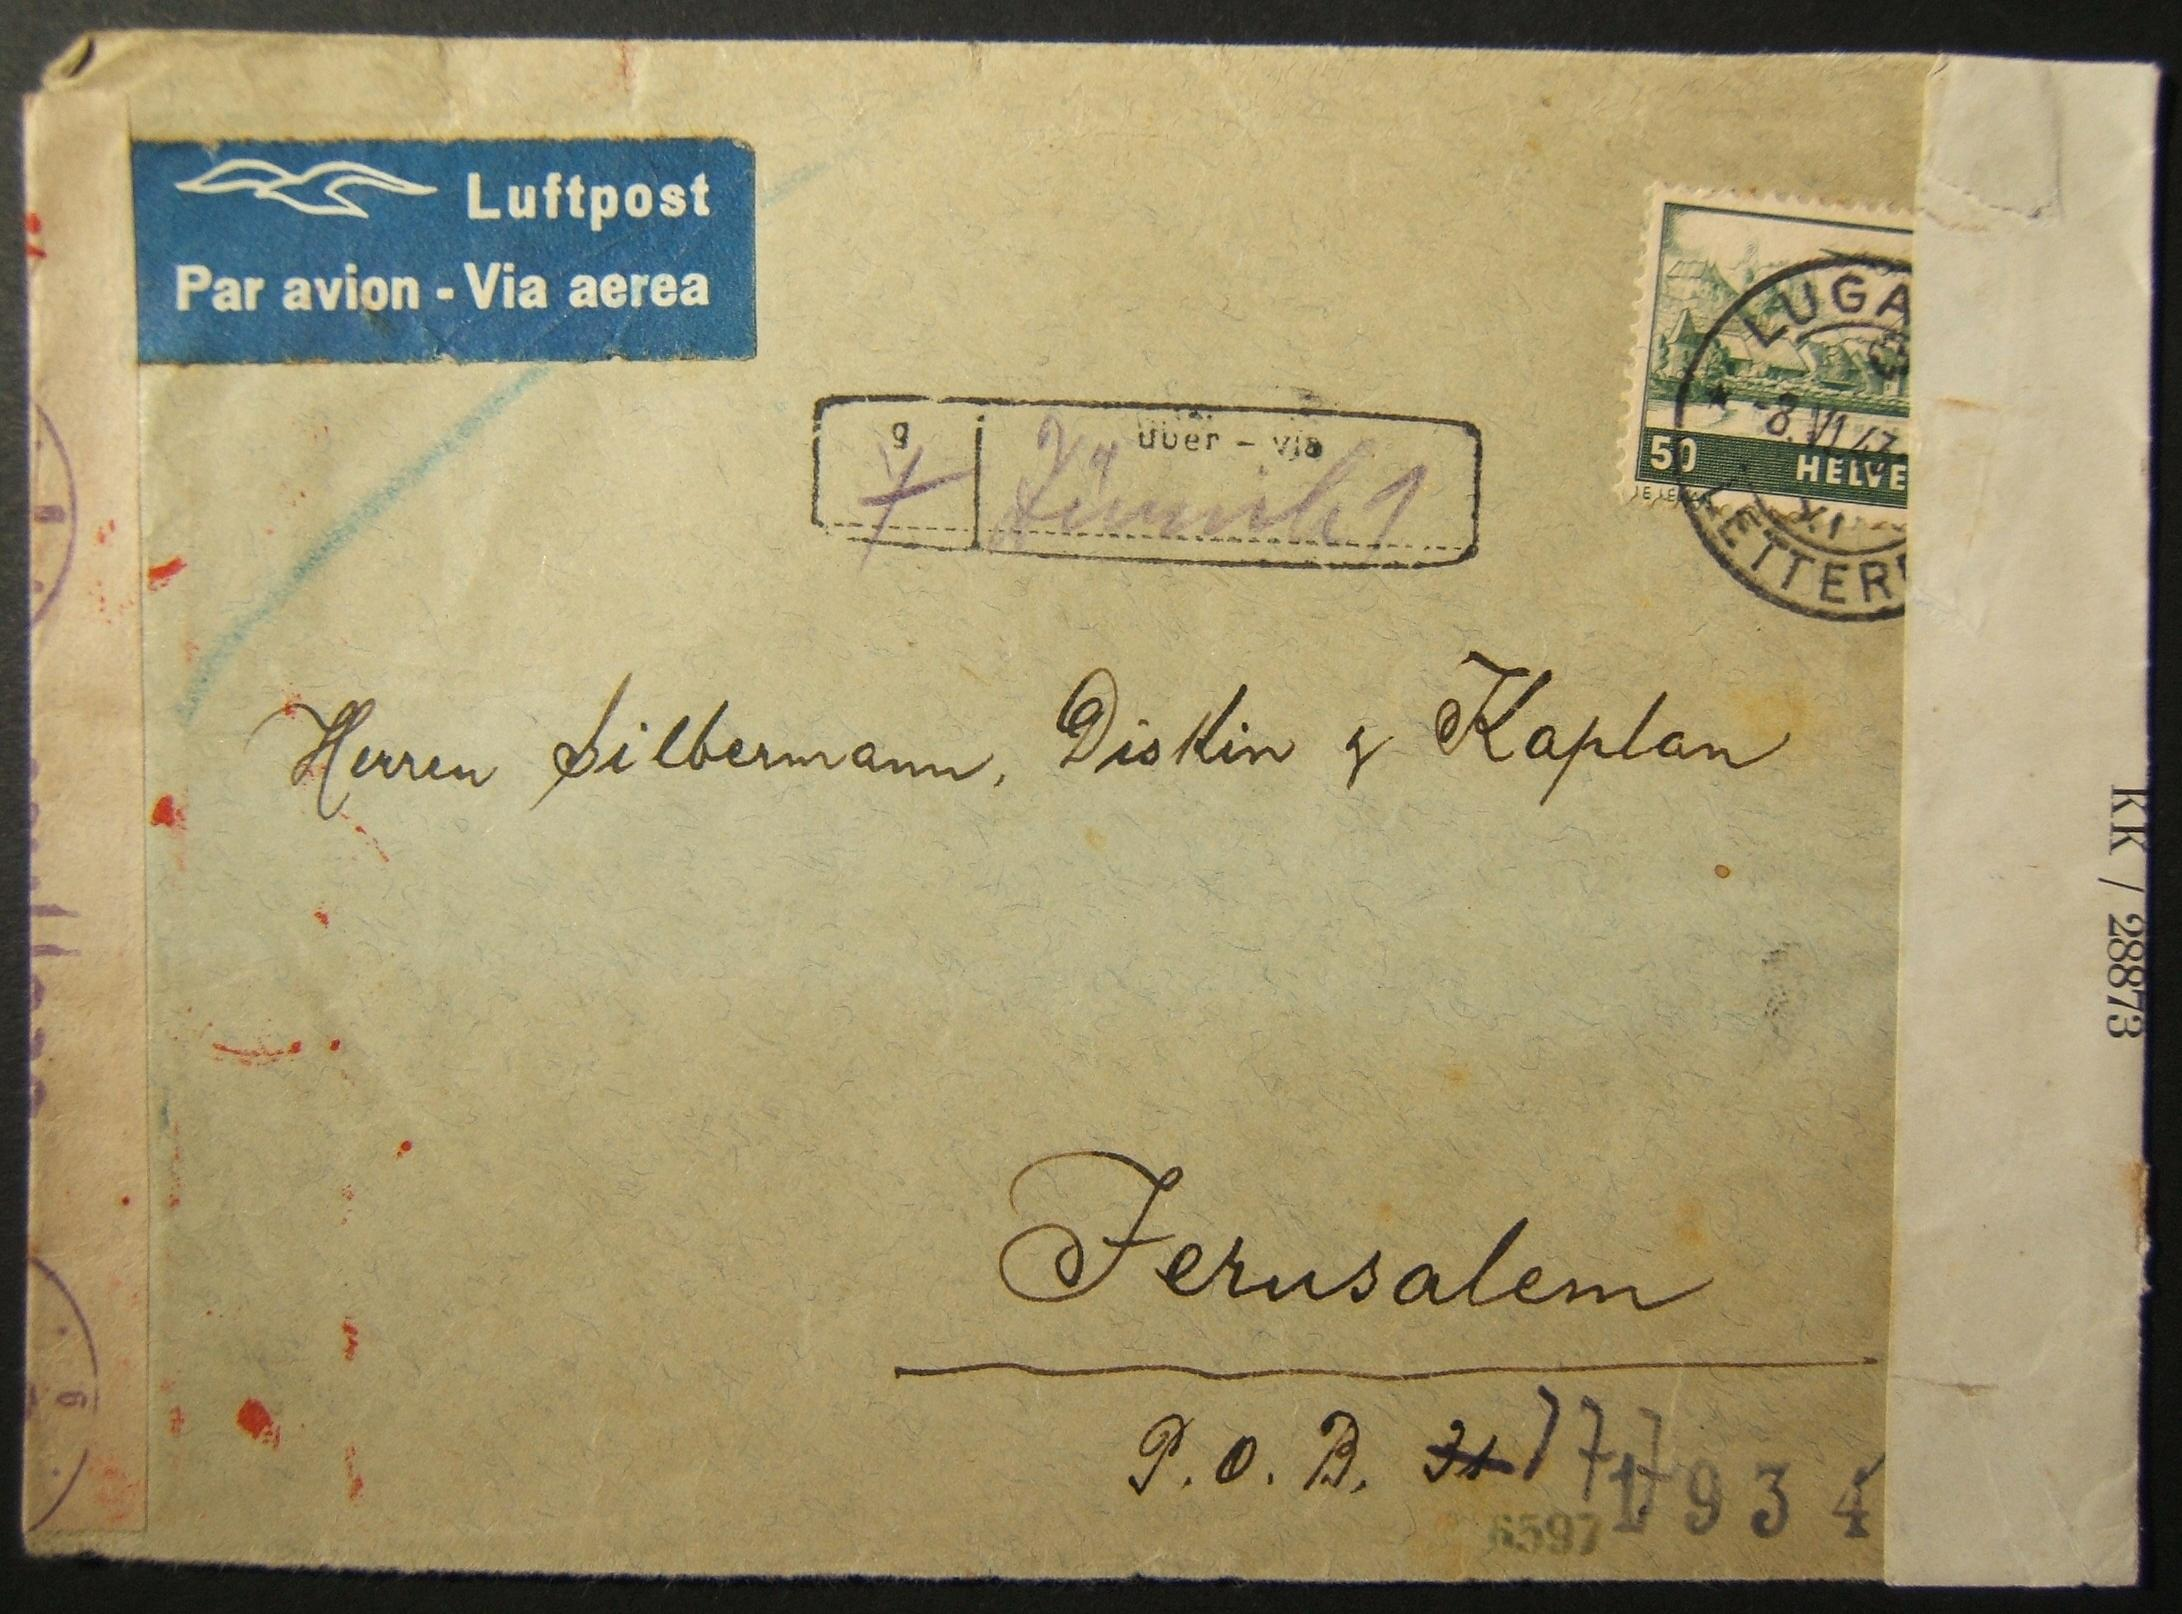 Wartime incoming civilian mail: 8 VI 1943 airmail cv ex LUGANO to JERUSALEM, franked 50Rp (40Rp total postage for 5gr incl 10Rp for airmail + 10Rp additional weight) and marked for